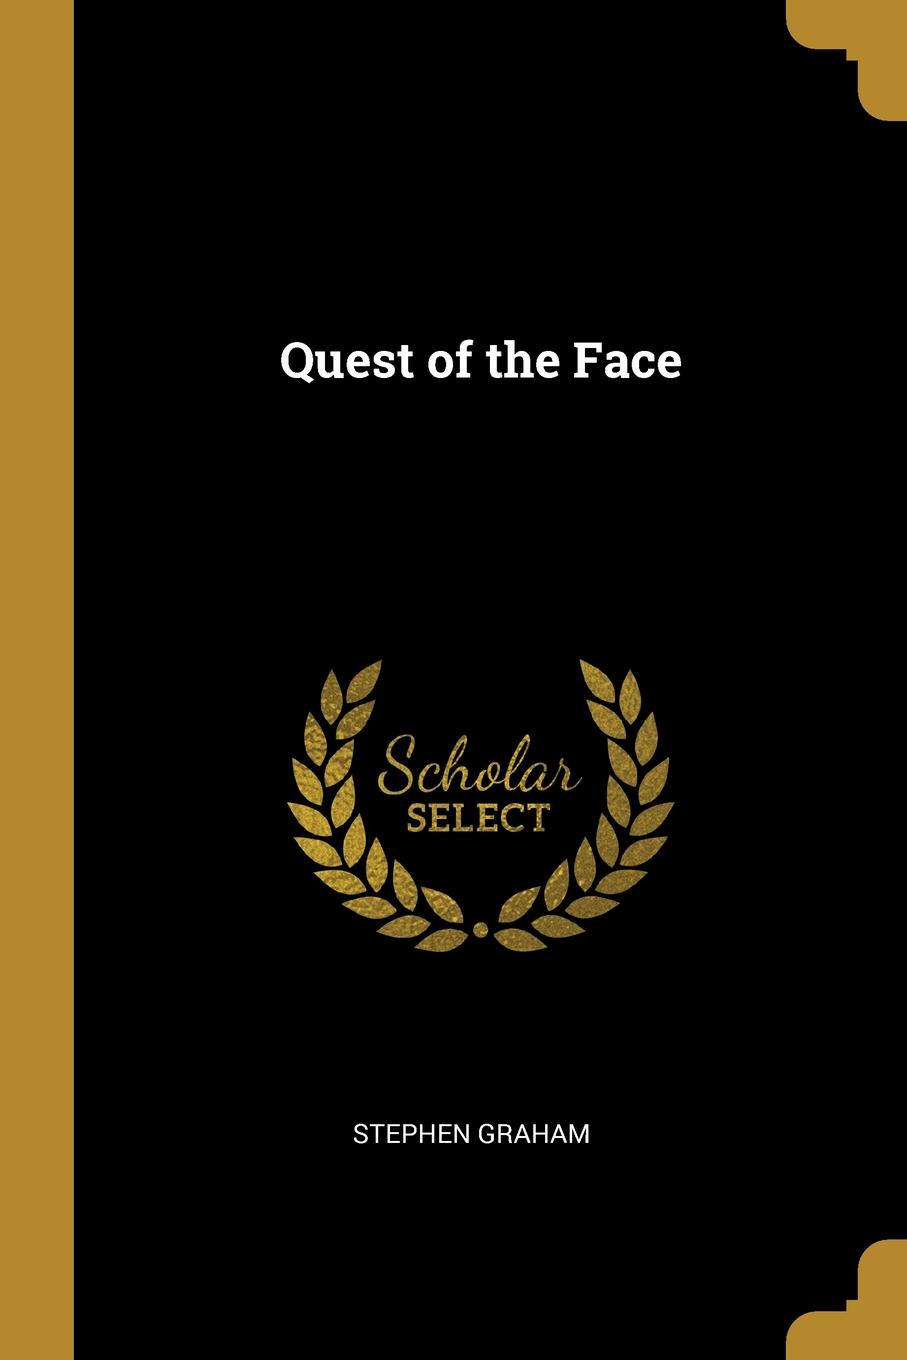 Stephen Graham Quest of the Face